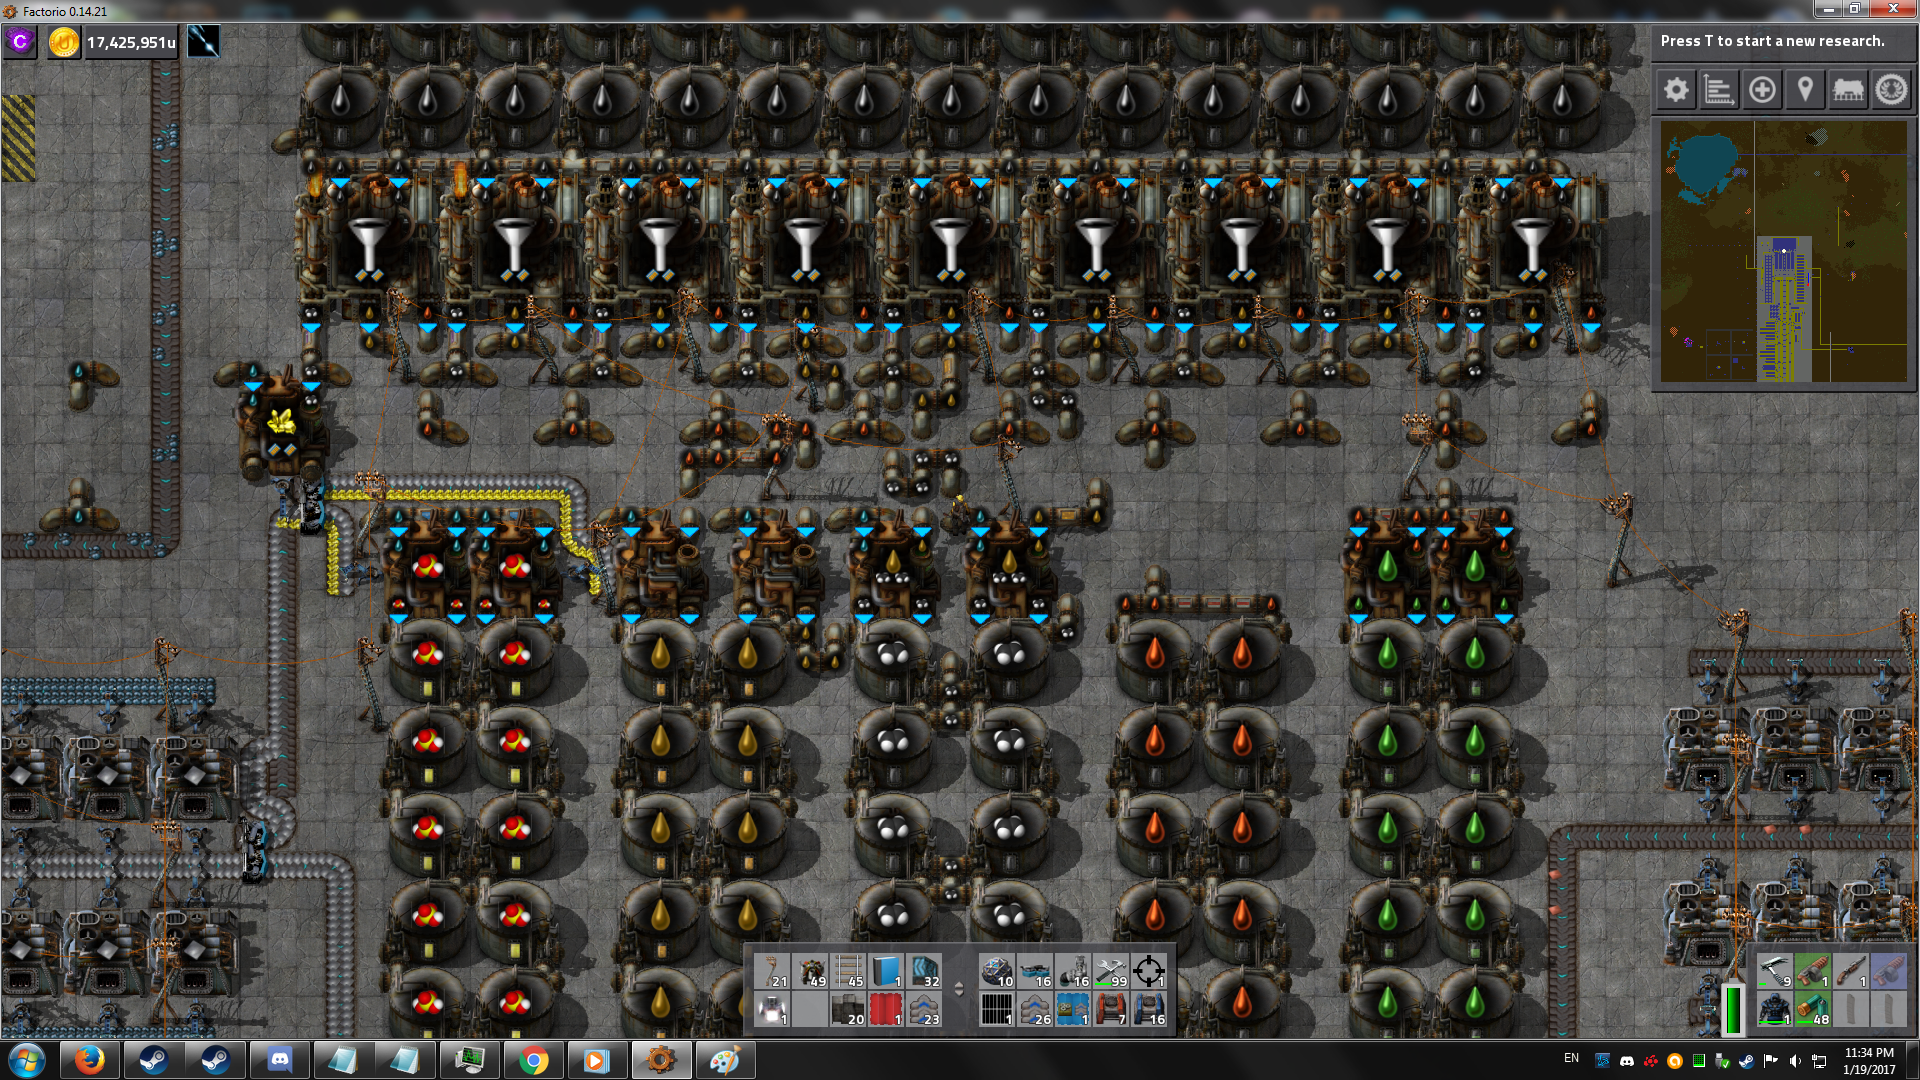 20+ Factorio Icon Pictures and Ideas on STEM Education Caucus